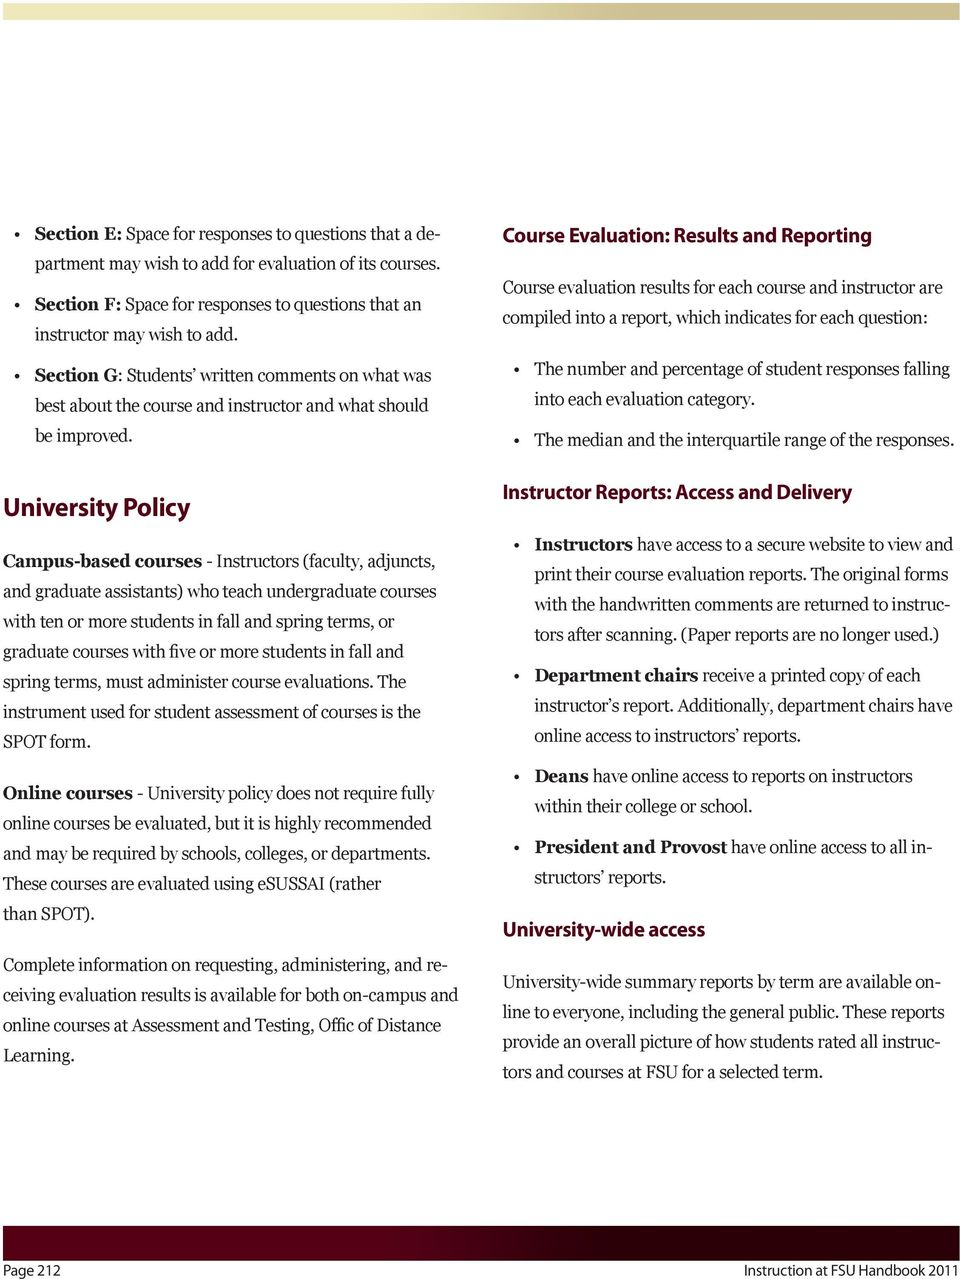 University Policy Campus-based courses - Instructors (faculty, adjuncts, and graduate assistants) who teach undergraduate courses with ten or more students in fall and spring terms, or graduate